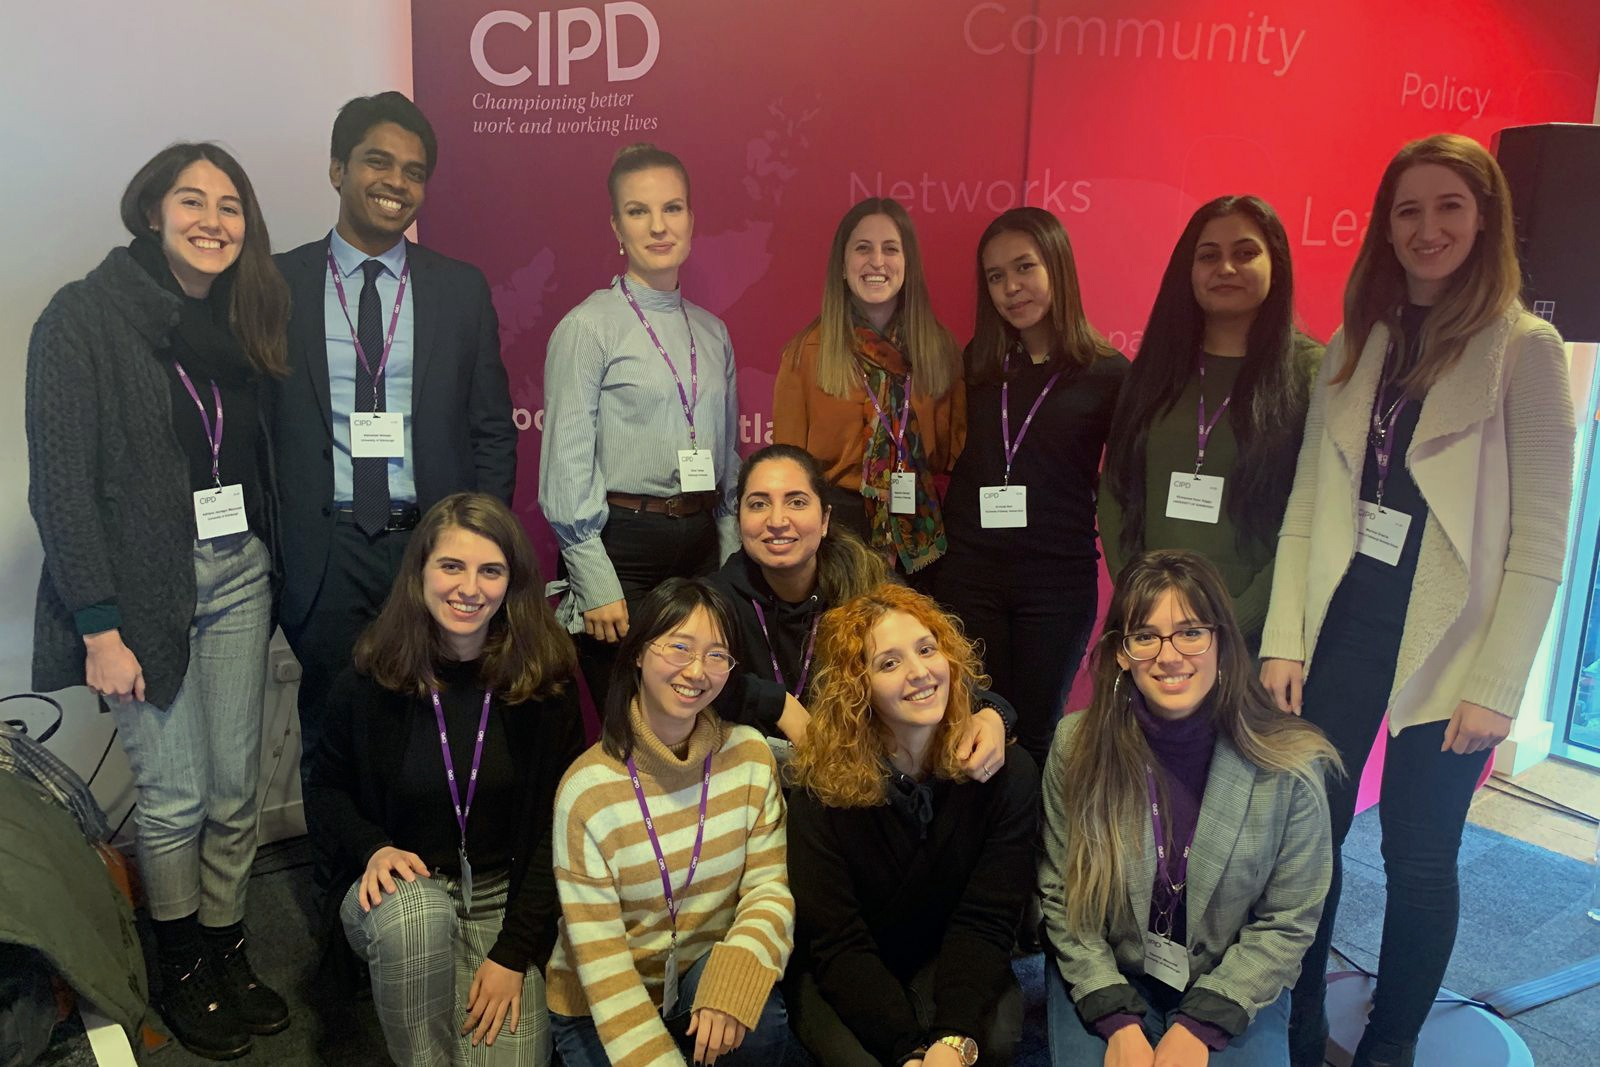 Student participants at the CIPD conference